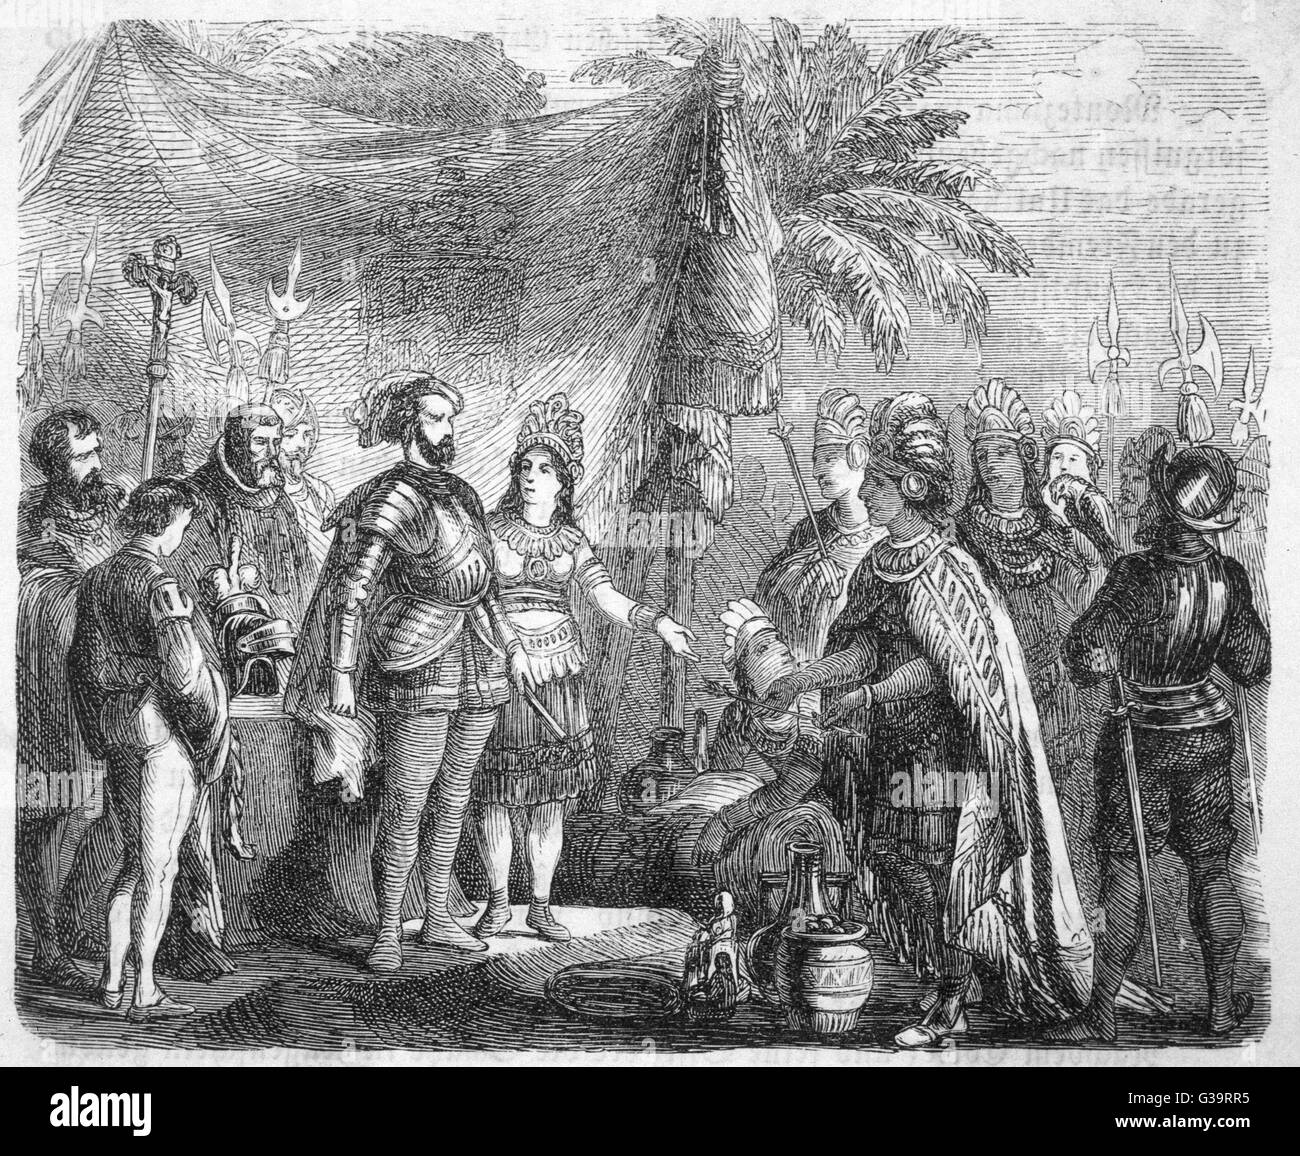 Cortes, accompanied by his  interpreter Dona Marina, receives  the Mexican embassy.        Date: 1519 - Stock Image